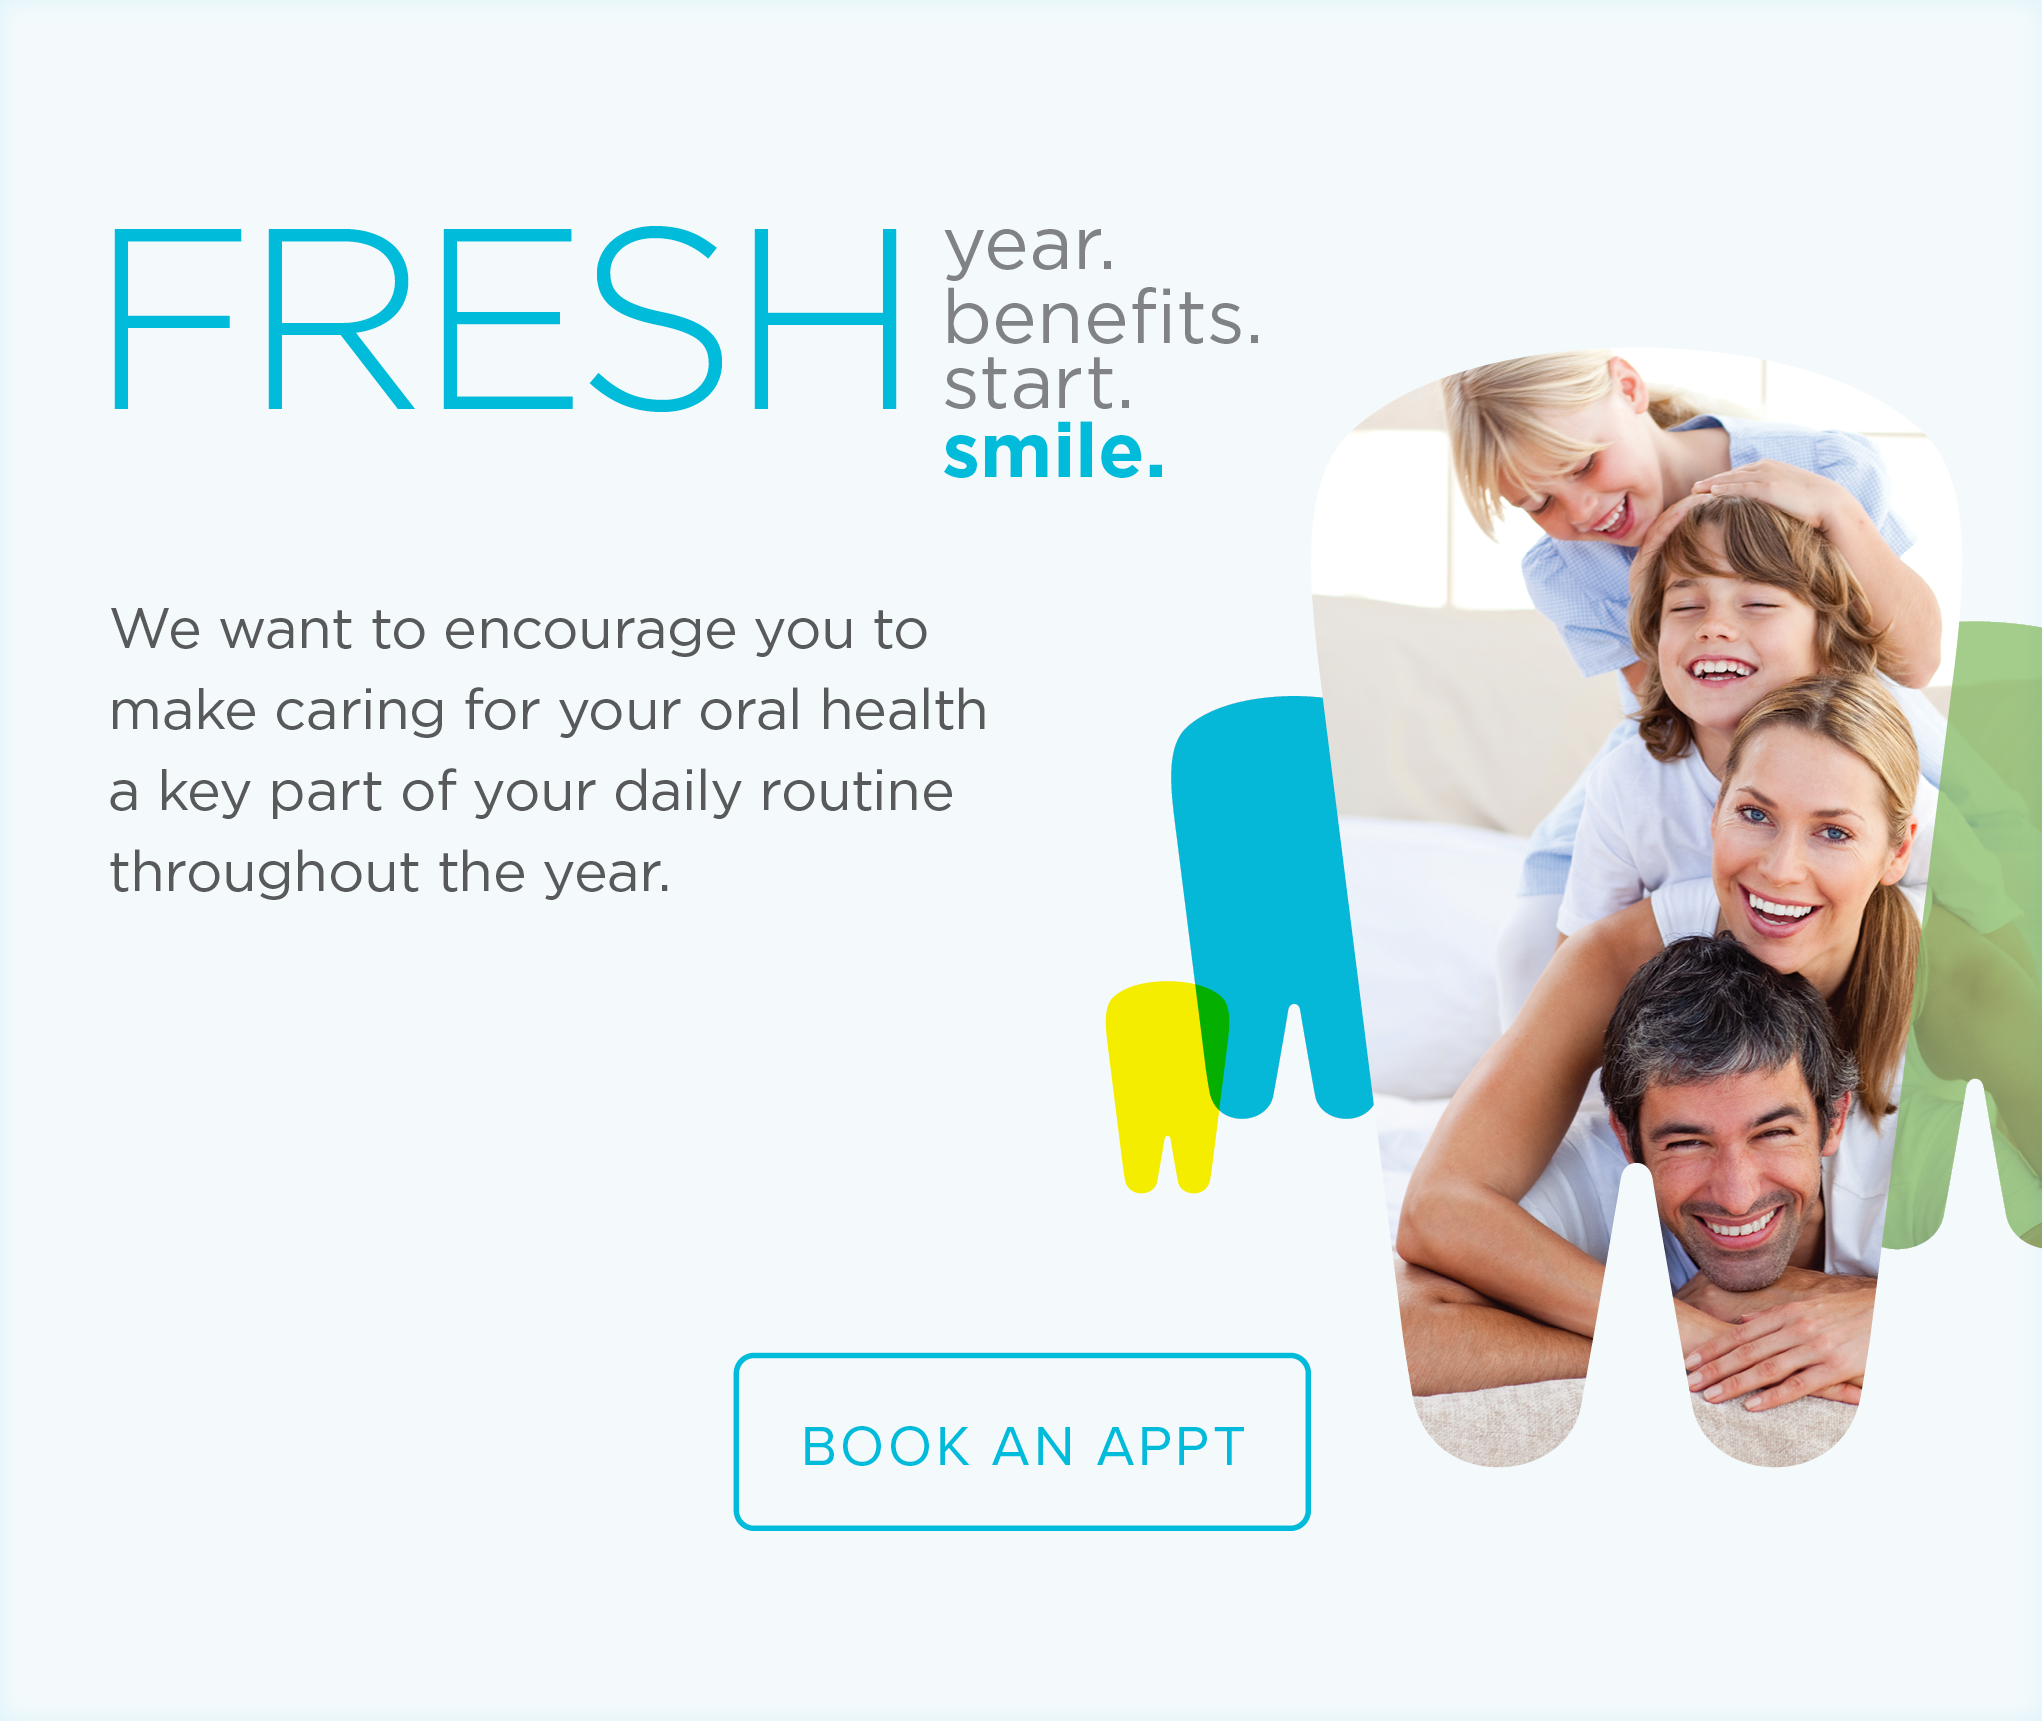 Albuquerque Modern Dentists - Make the Most of Your Benefits